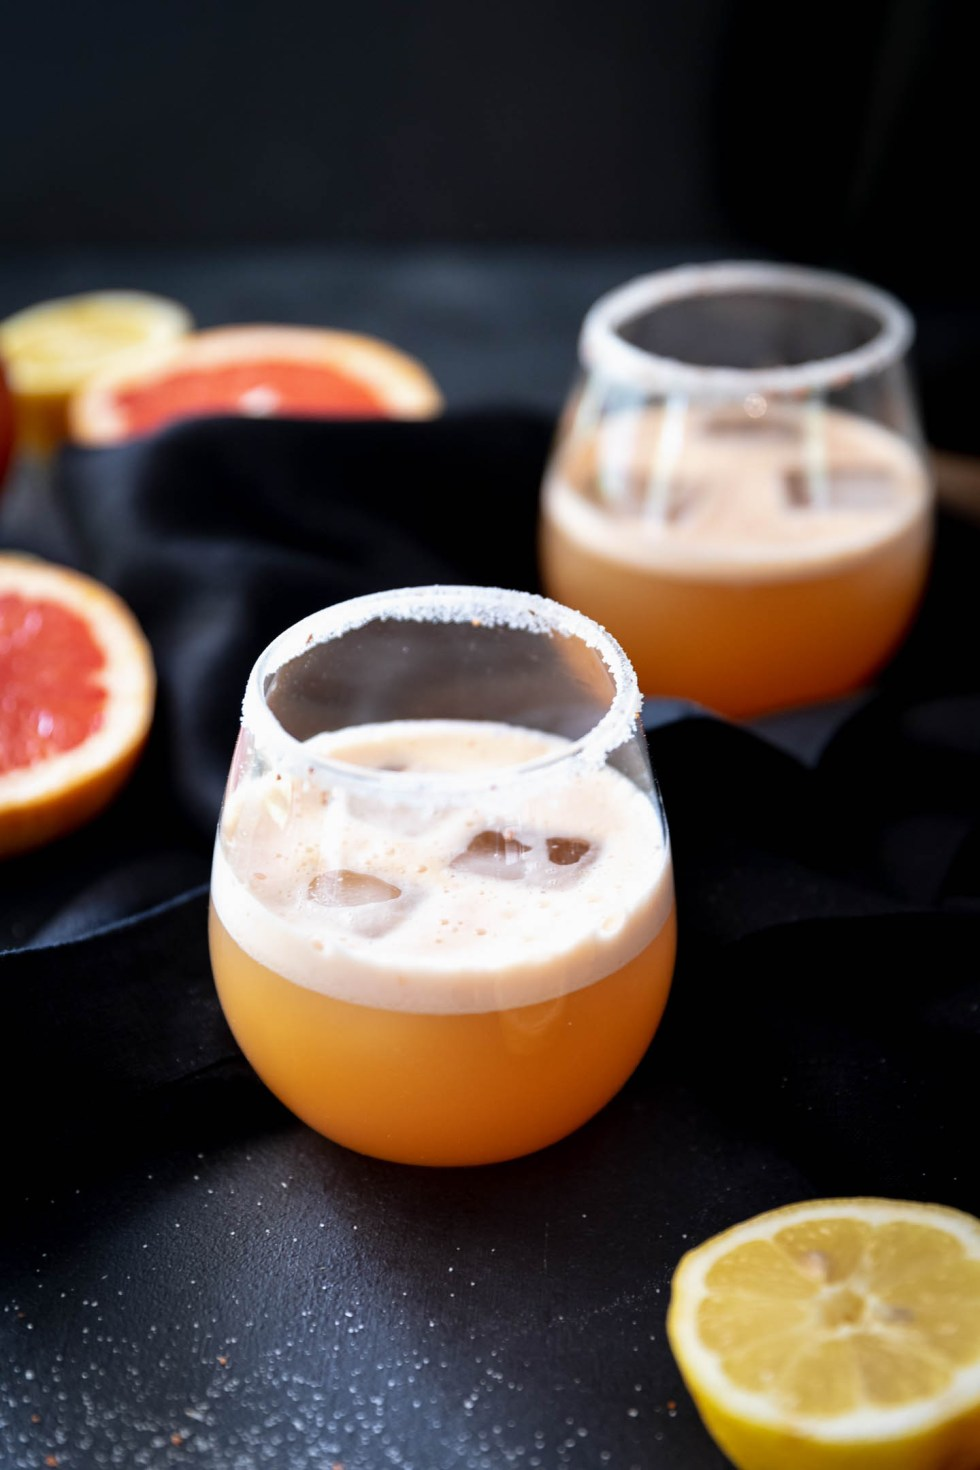 Dark and moody photograph of two stemless wine glasses filled with grapefruit margaritas